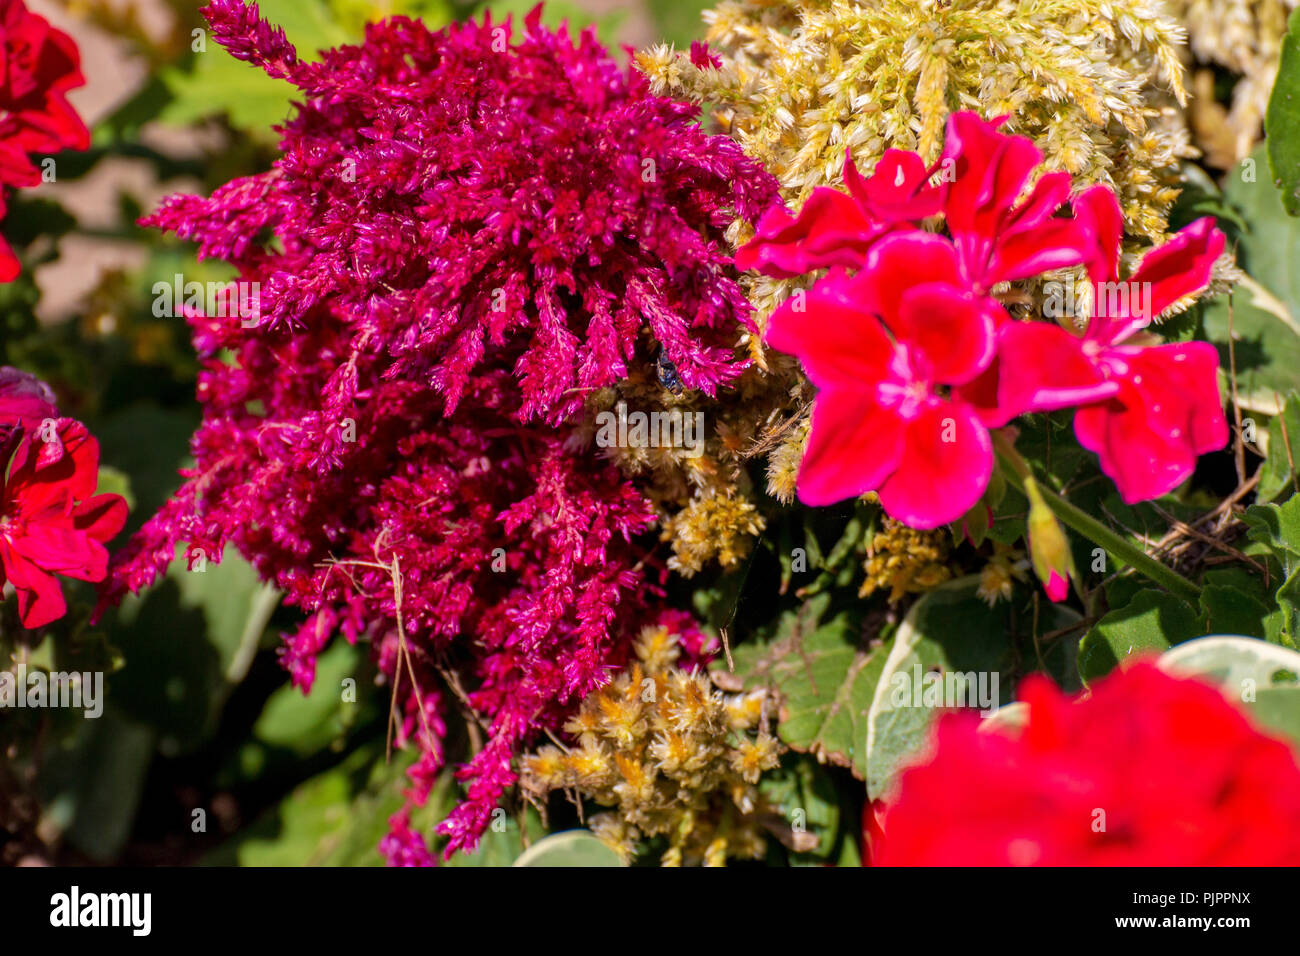 Pretty Flowers In The Middle Of The Day Stock Photo 218089030 Alamy